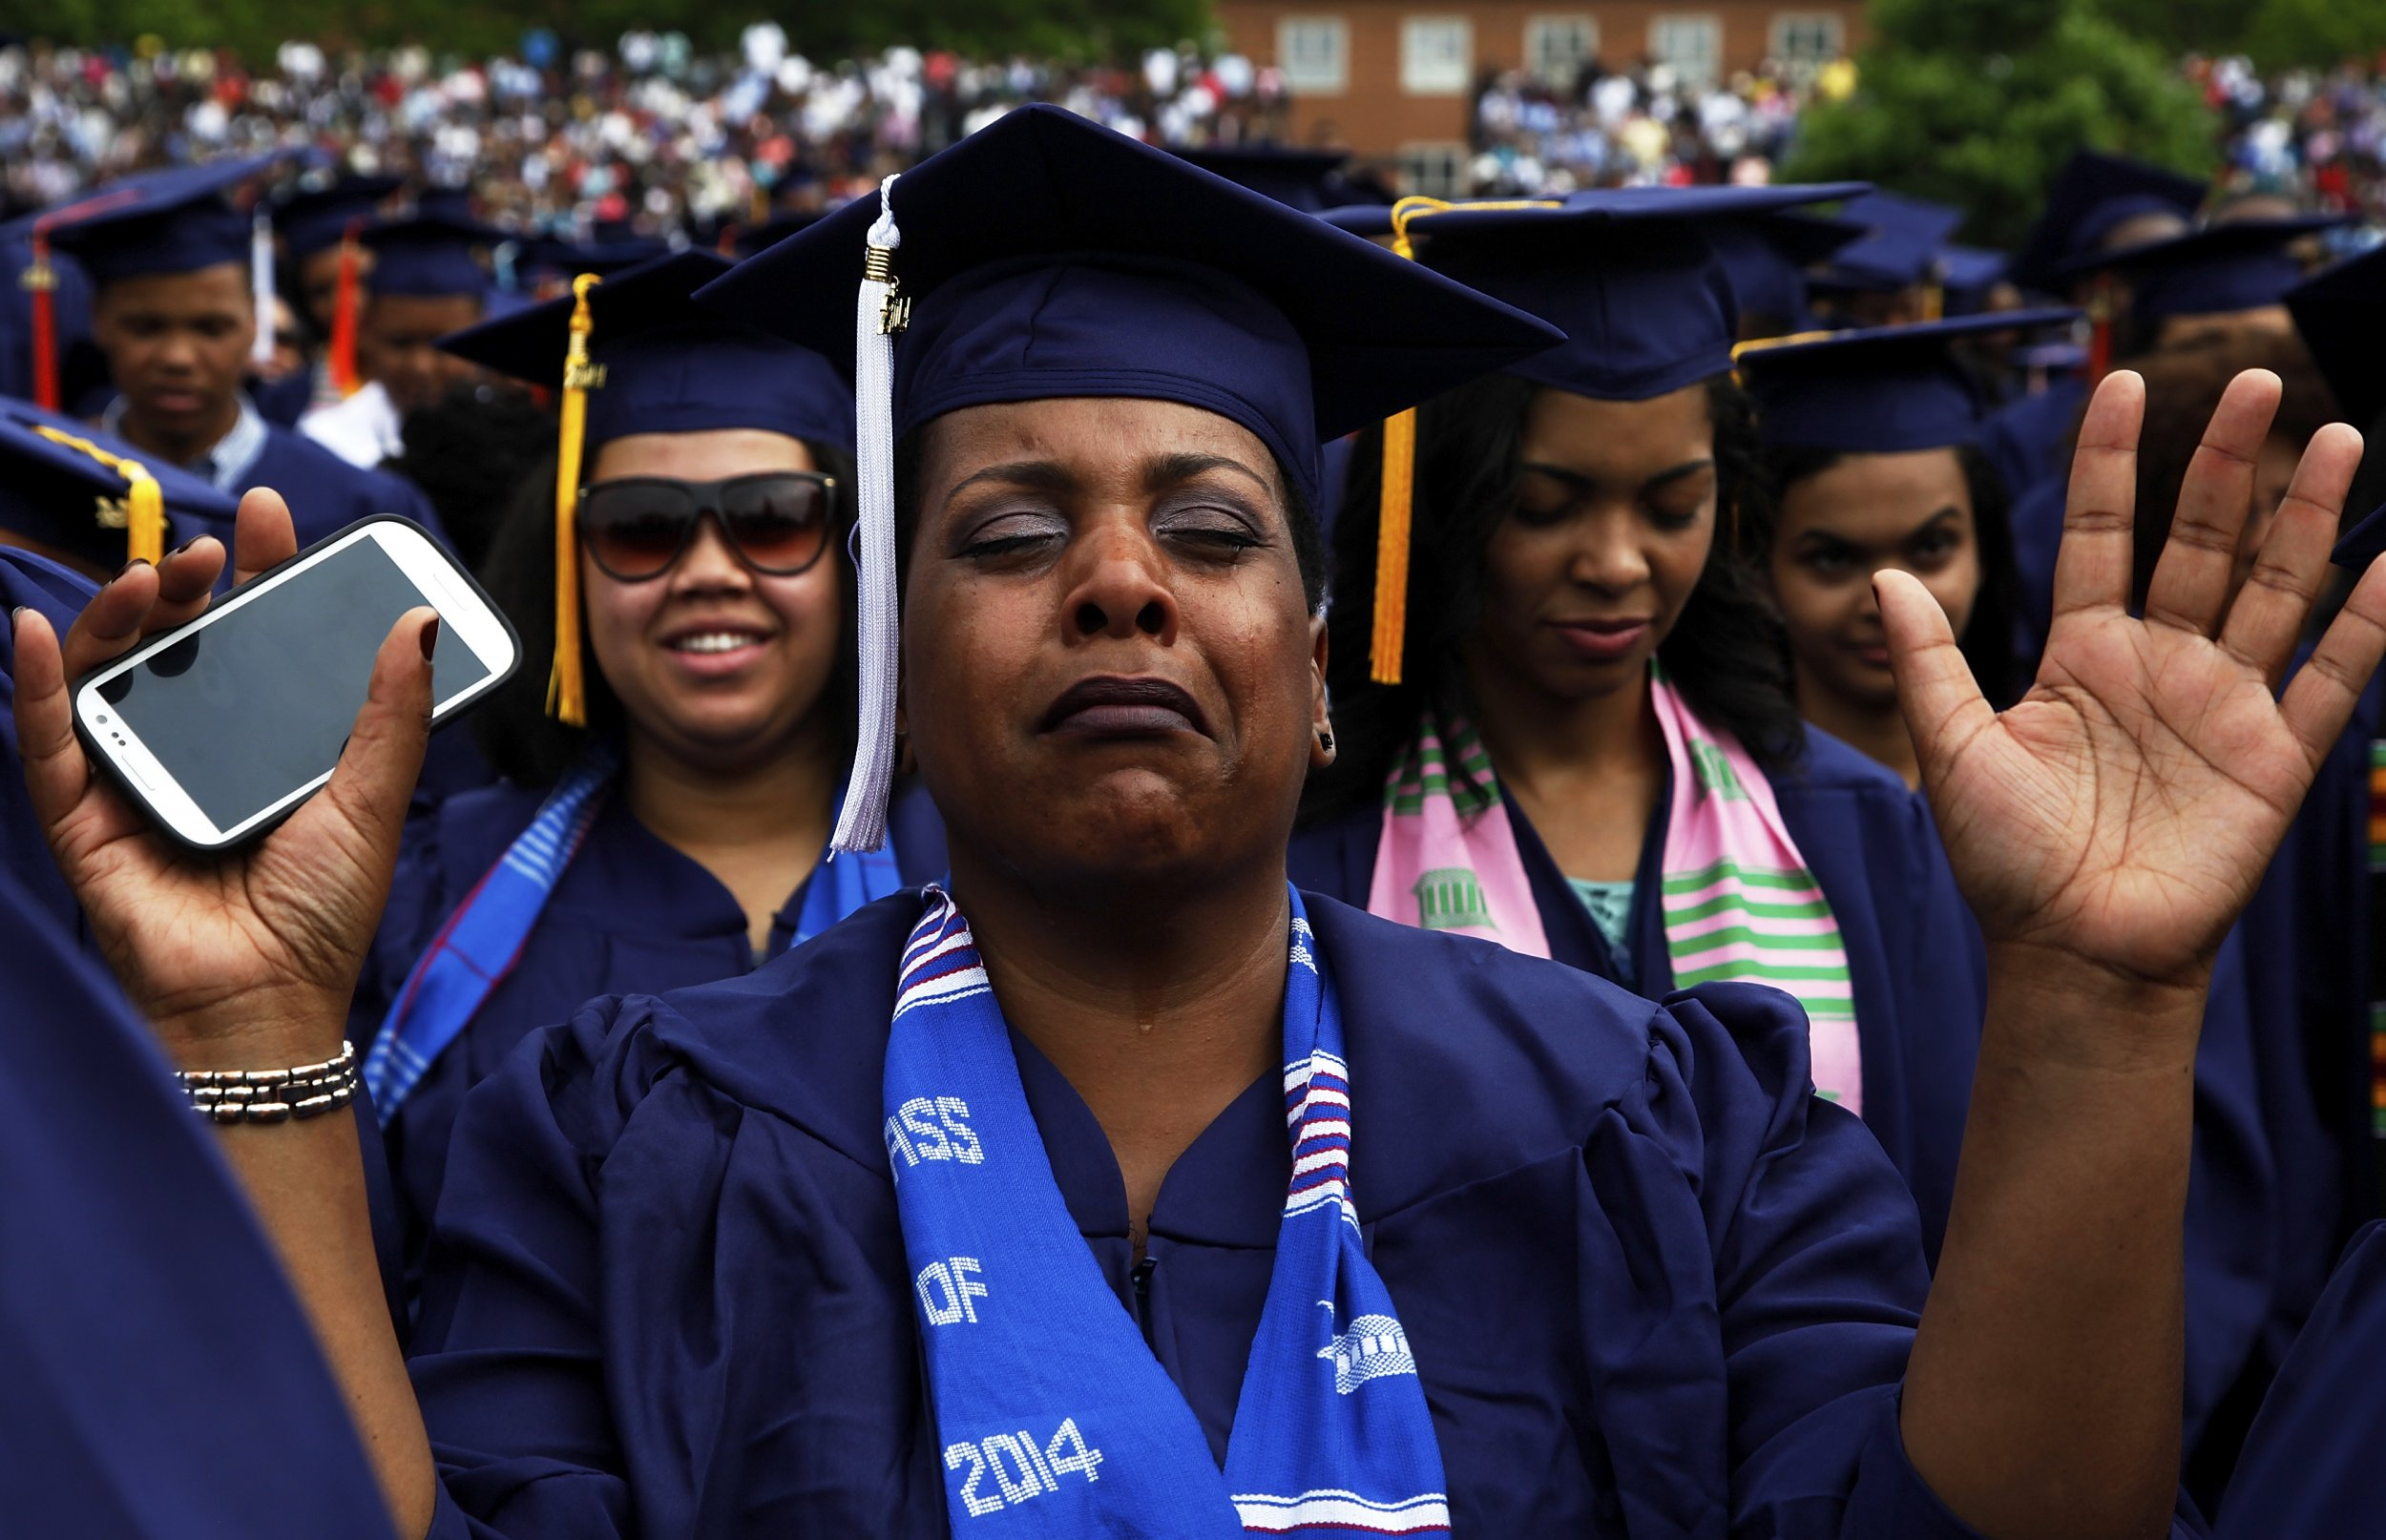 95c7ab2f55 A graduate cries during a prayer at Howard University s 2014 graduation  ceremonies in Washington